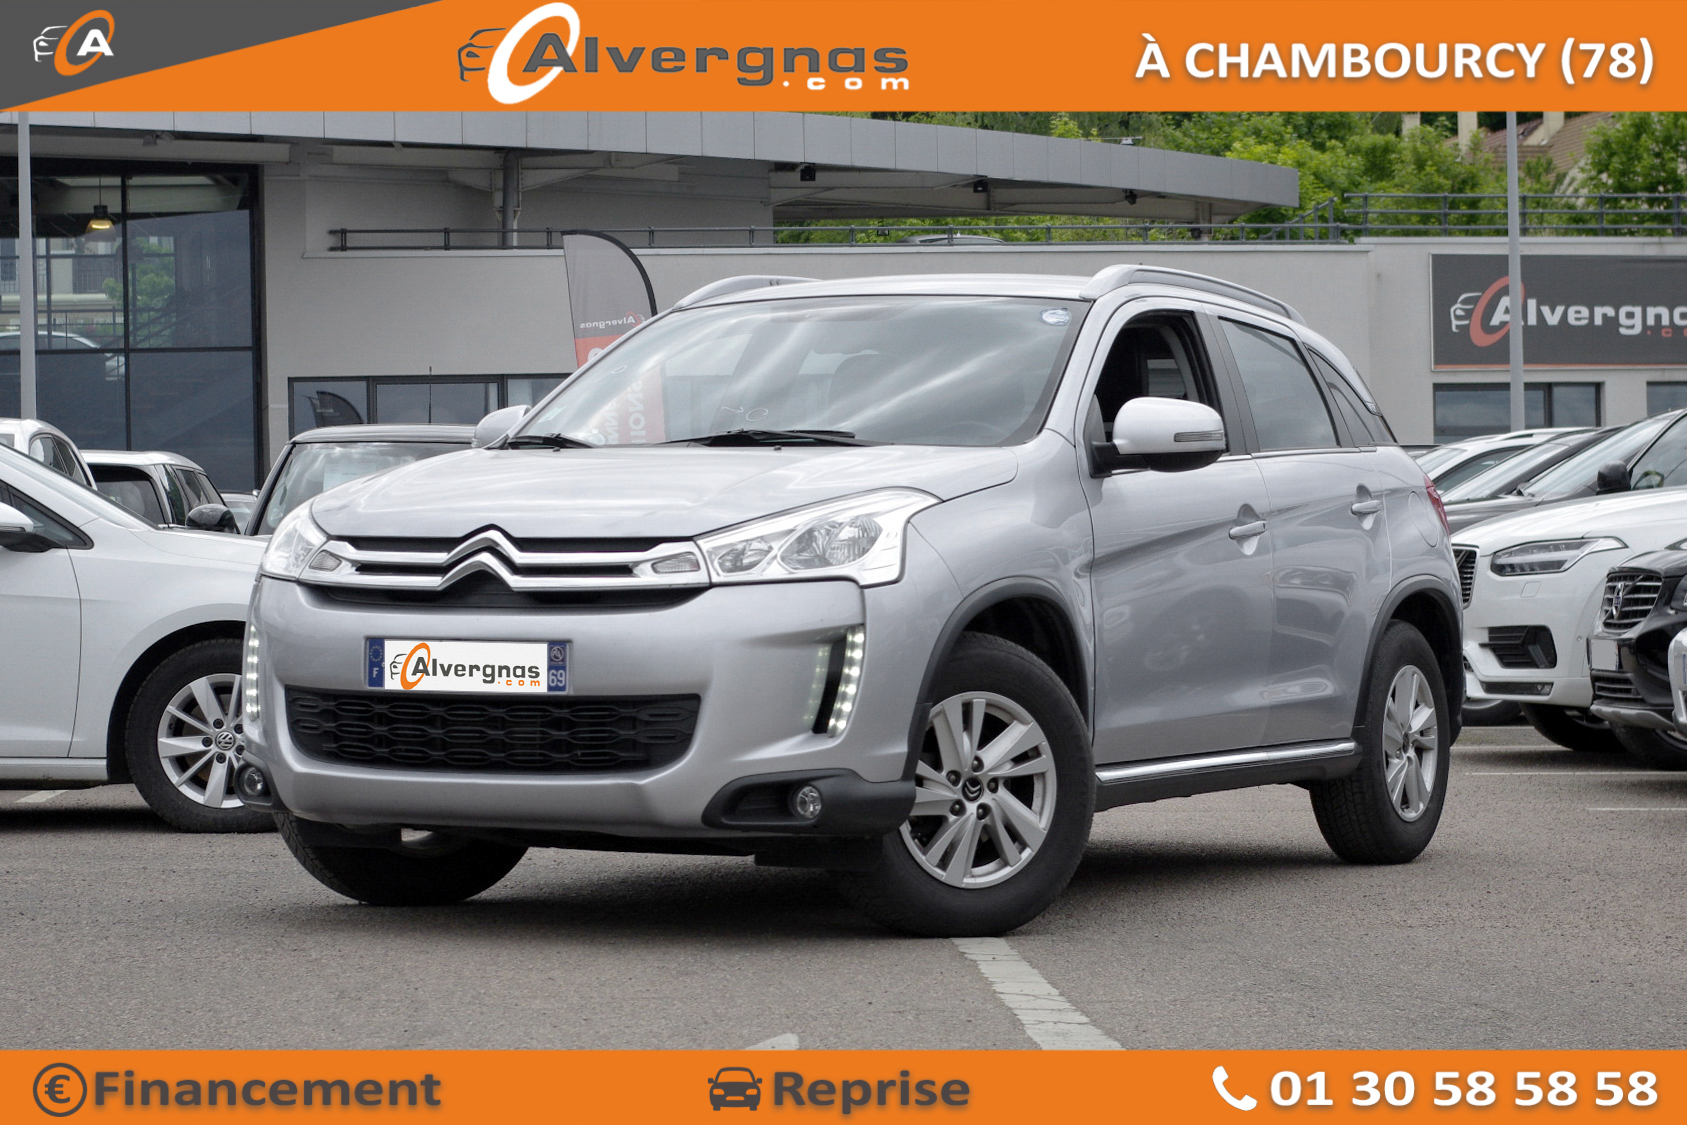 CITROEN C4 AIRCROSS d'occasion sur Paris